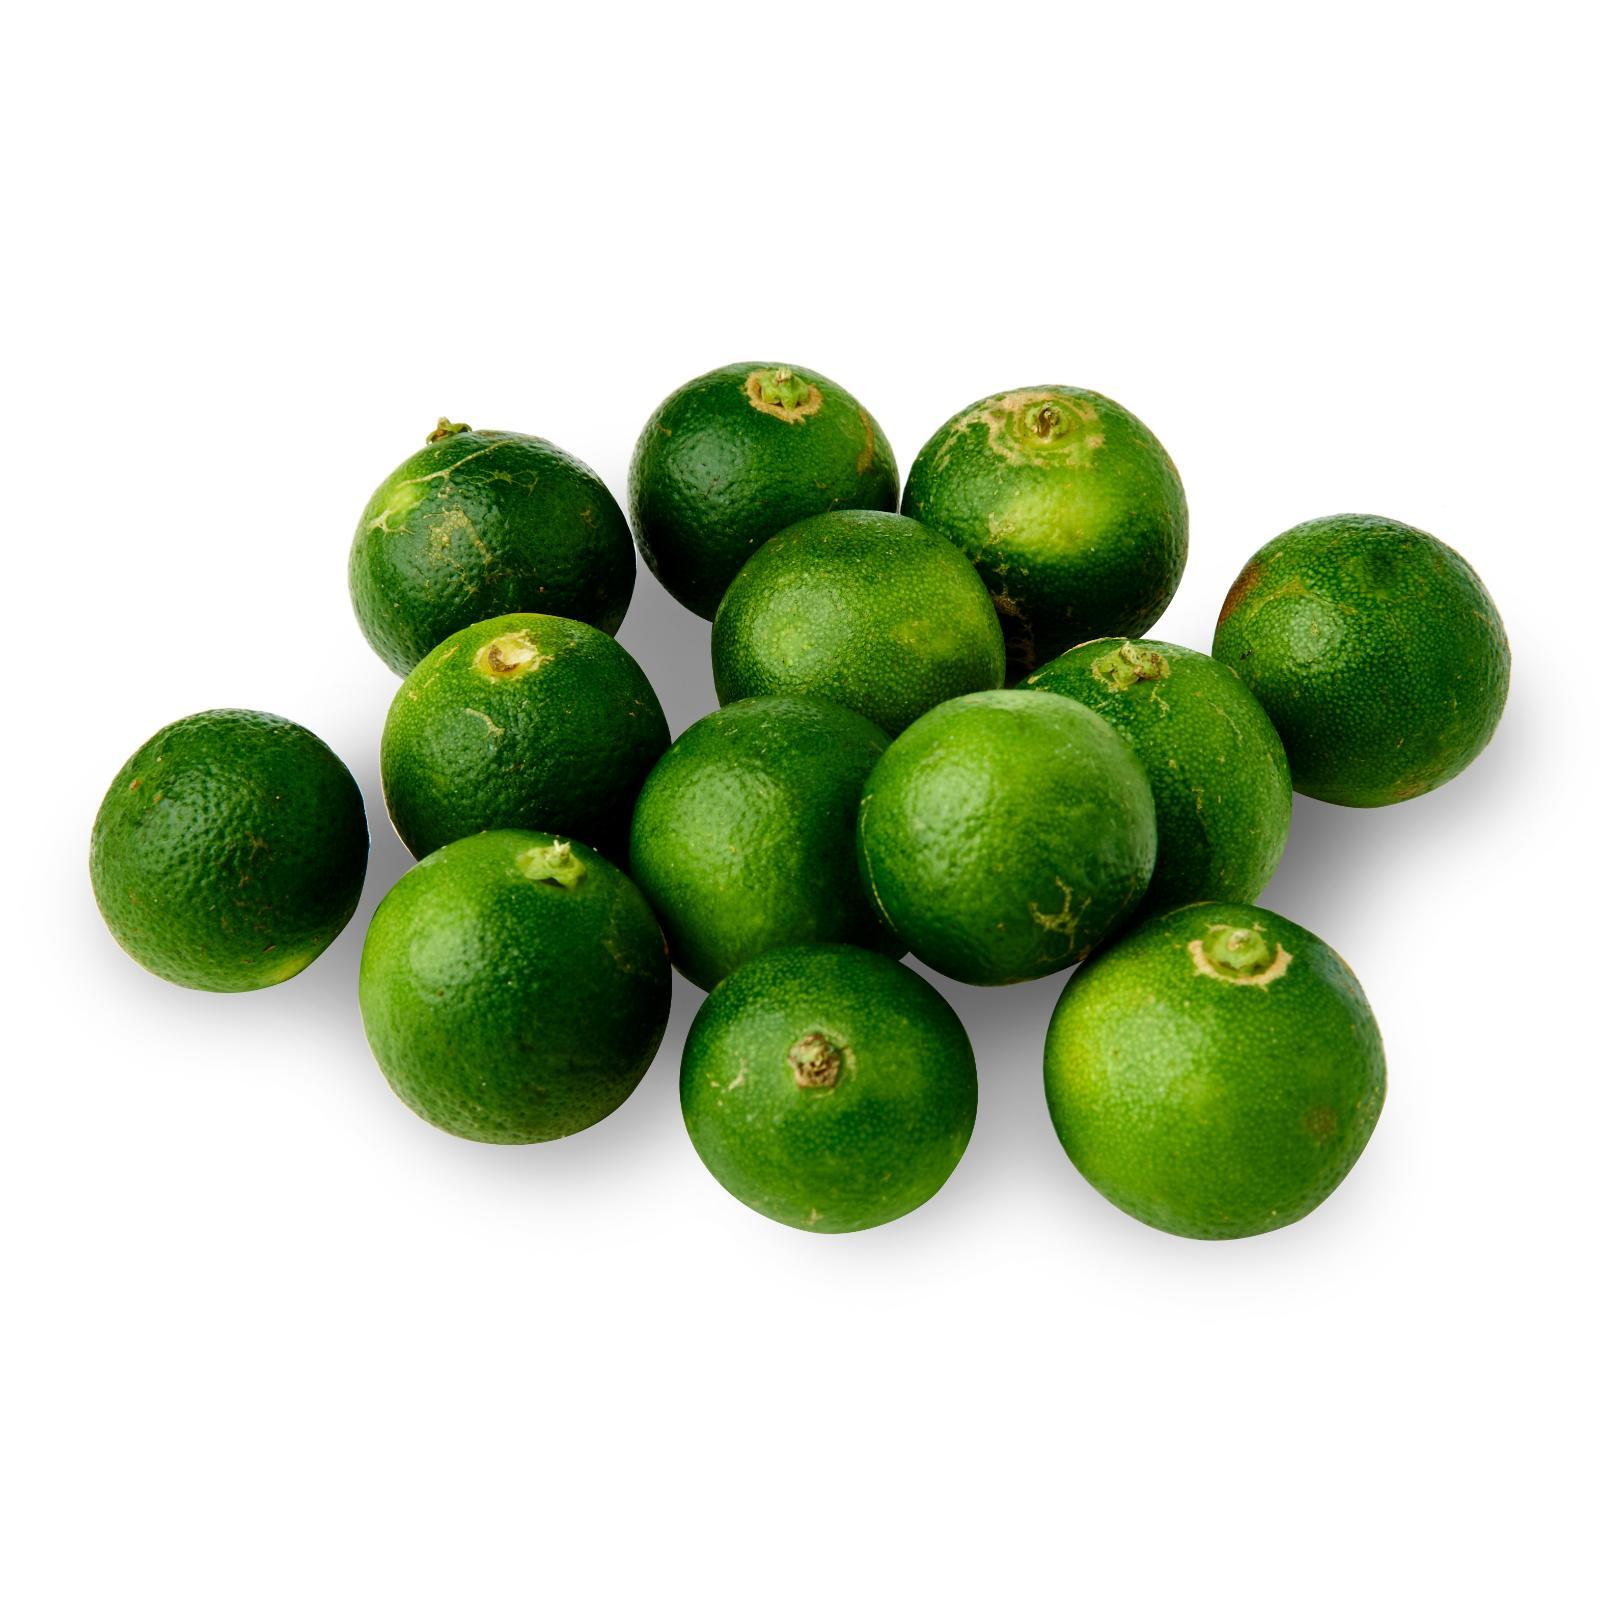 Yuvvo Small Limes By Redmart.